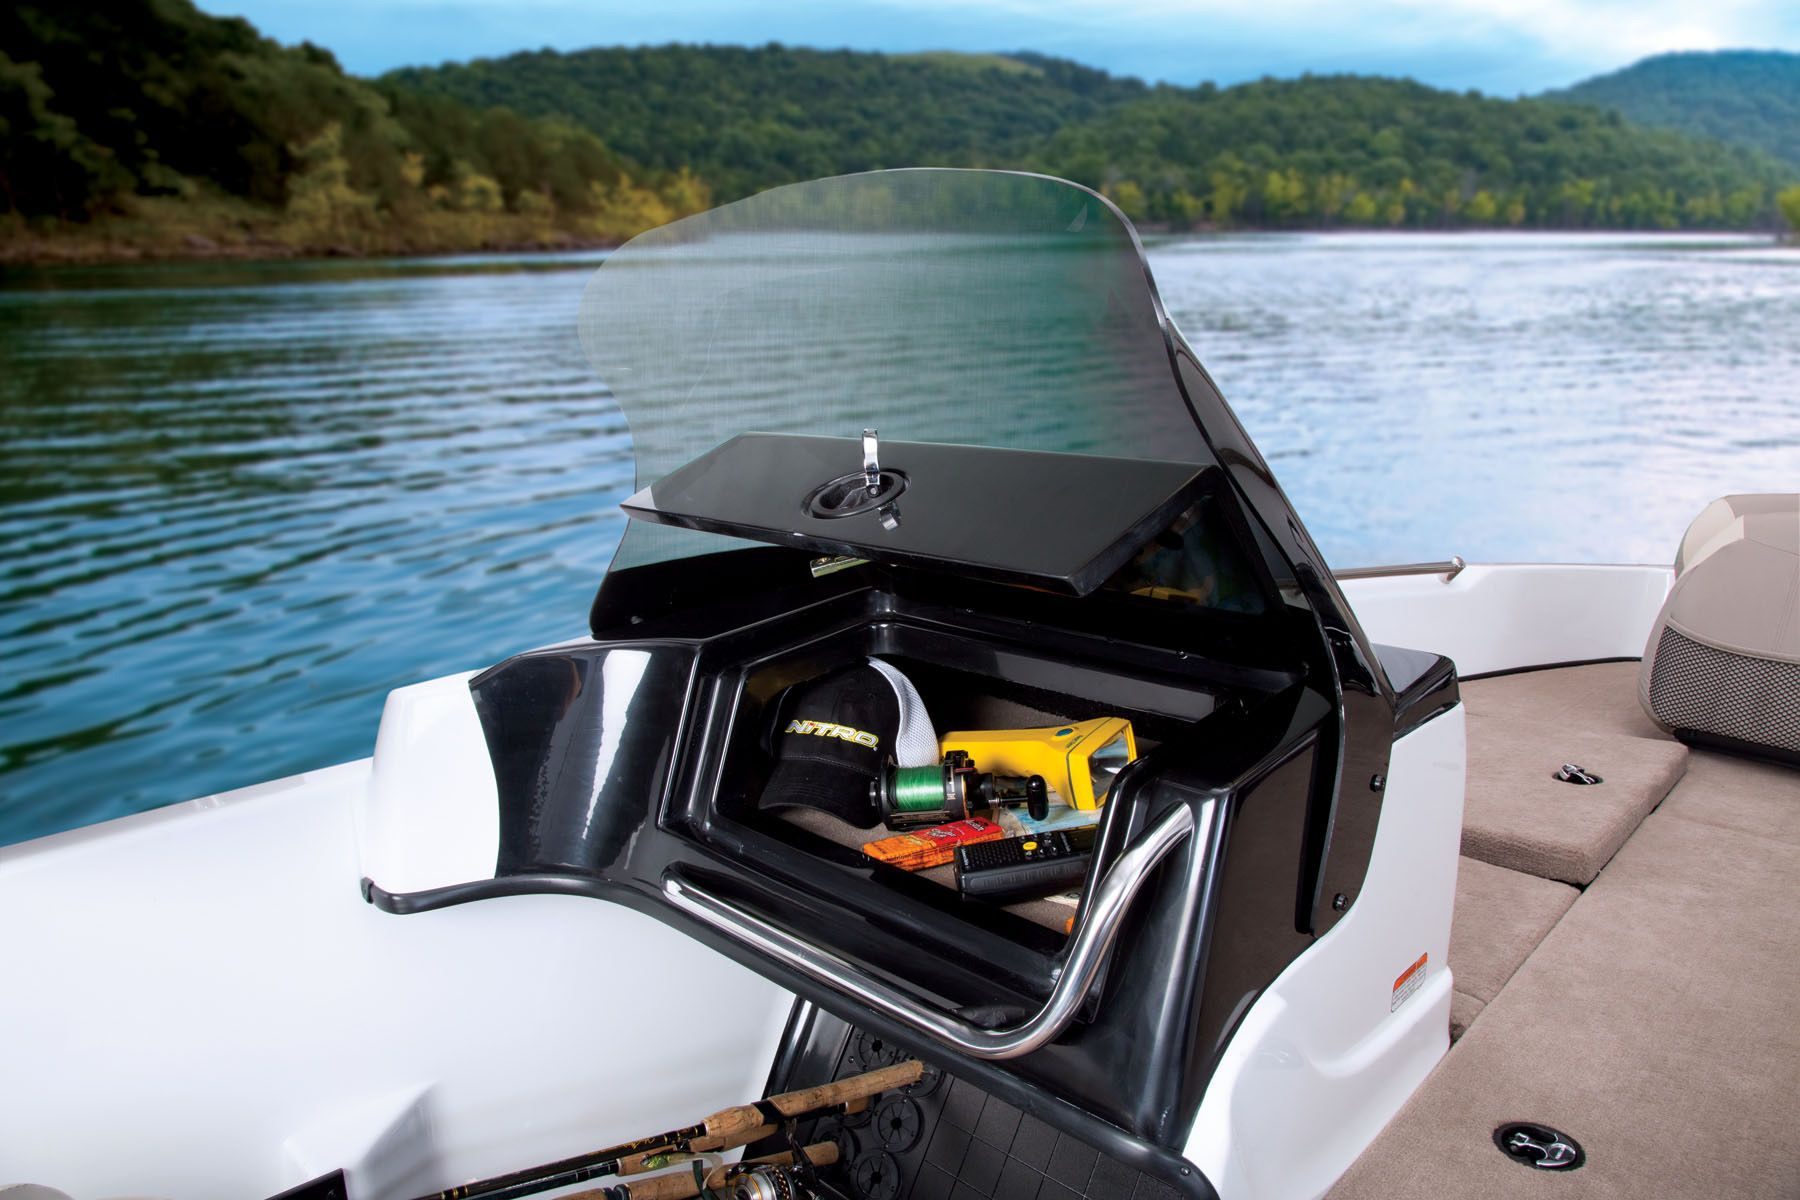 springfield dp outdoors steel seat pedestal boat garelick amazon degree stainless seating swivel com sports